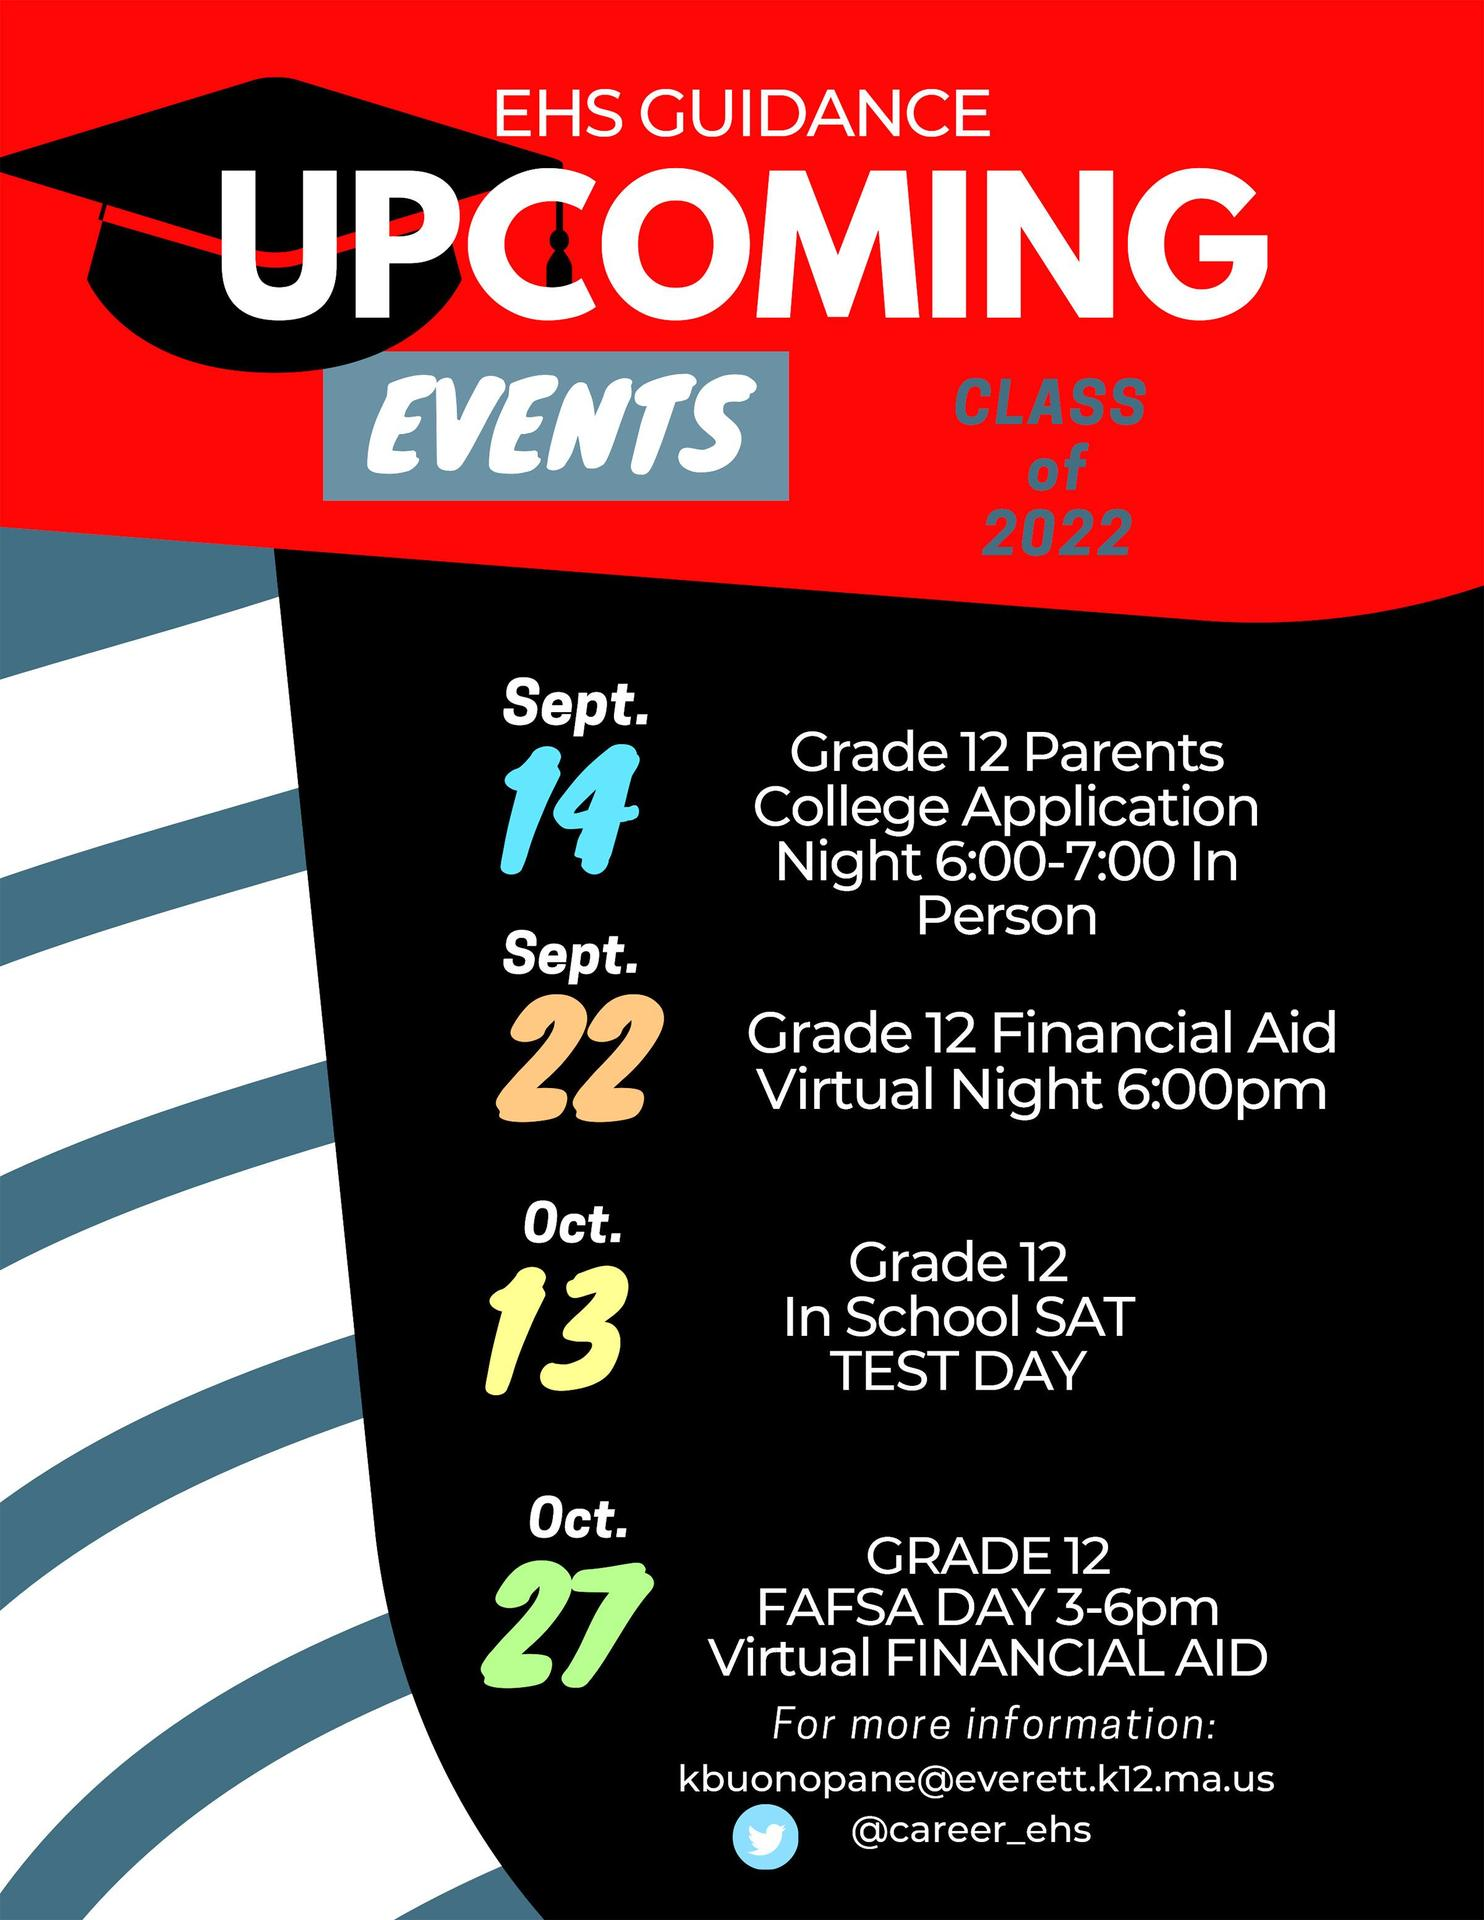 Flyer, all text, against a black and red background